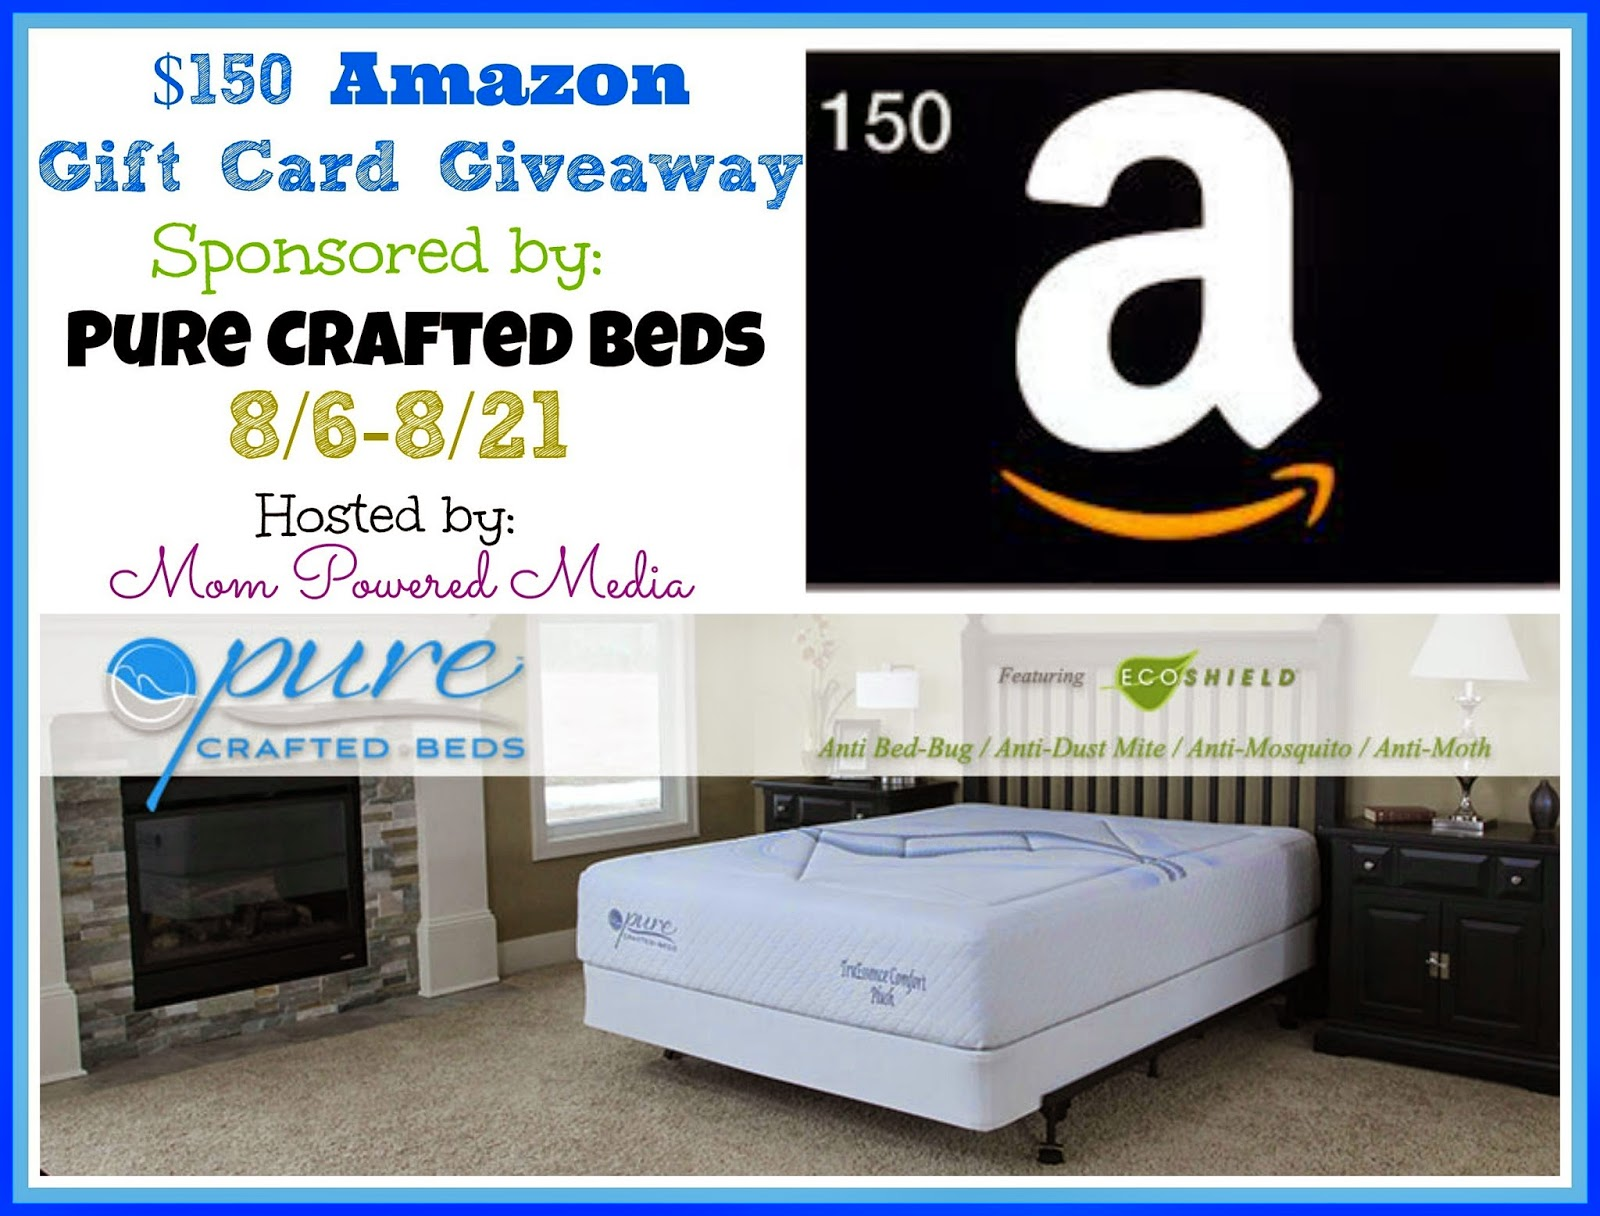 Enter to #win a $150 Amazon Gift Card from Pure Crafted Beds. Giveaway ends 8/21.